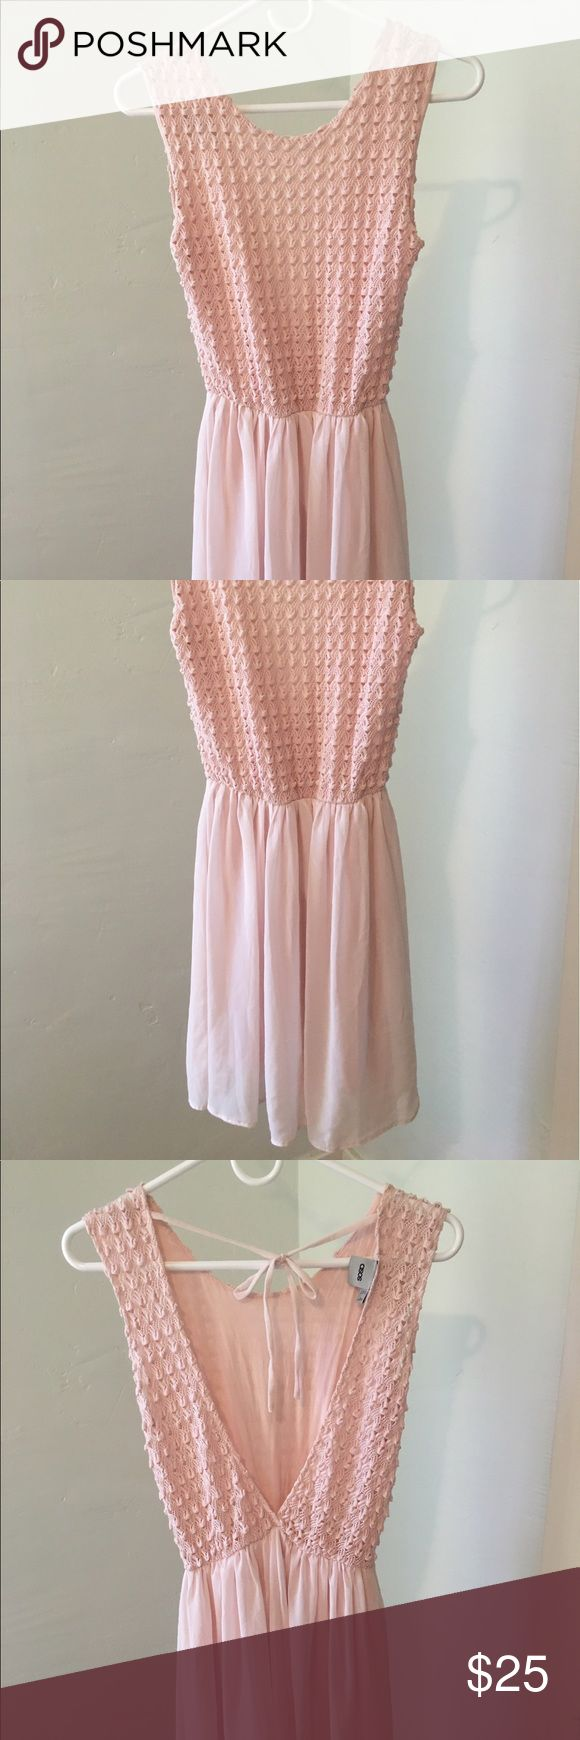 Pink Asos dress Crochet top and sheer bottom with lining ASOS Petite Dresses Mini